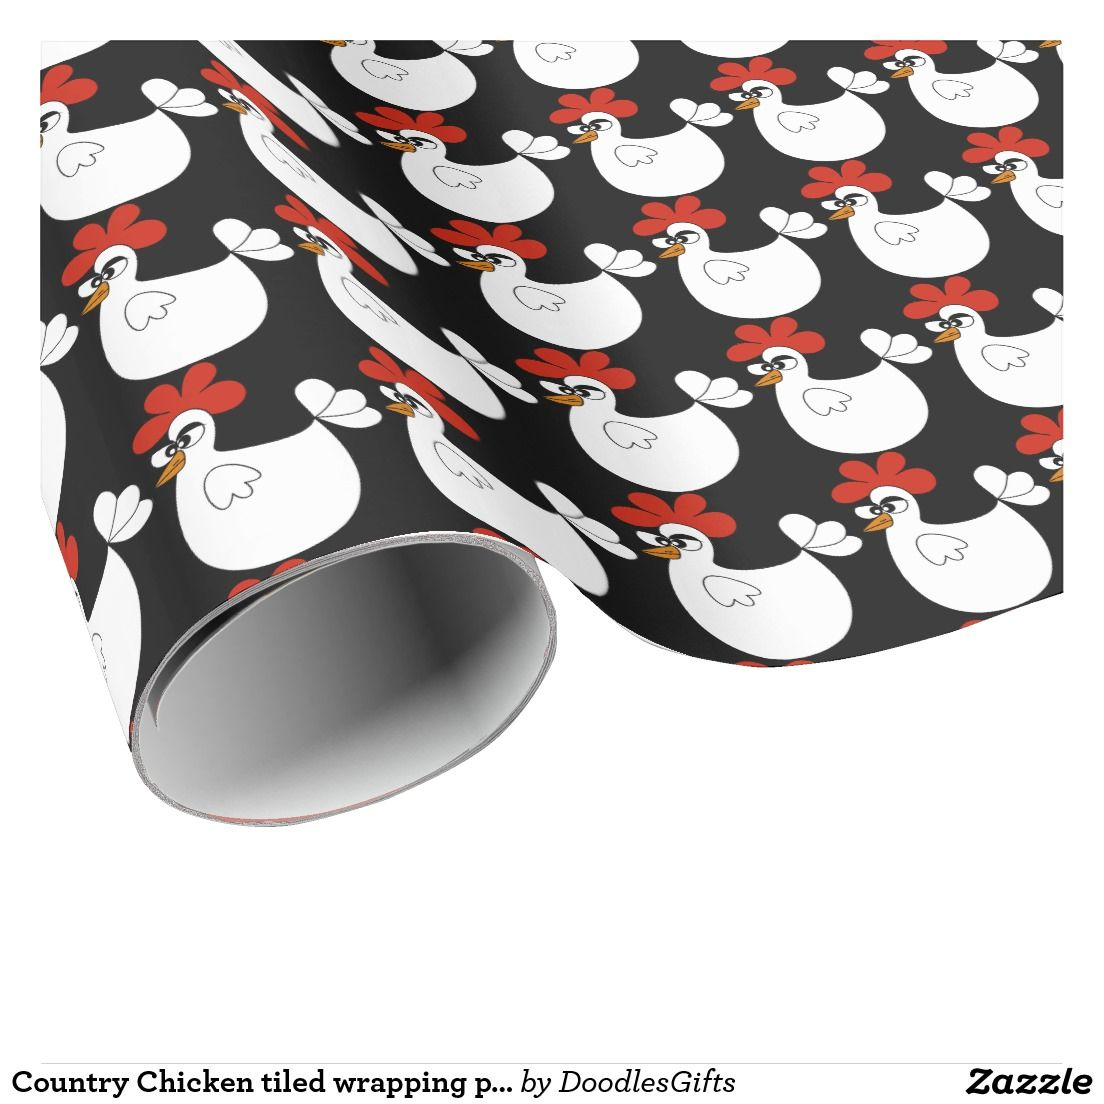 Country Chicken tiled wrapping paper